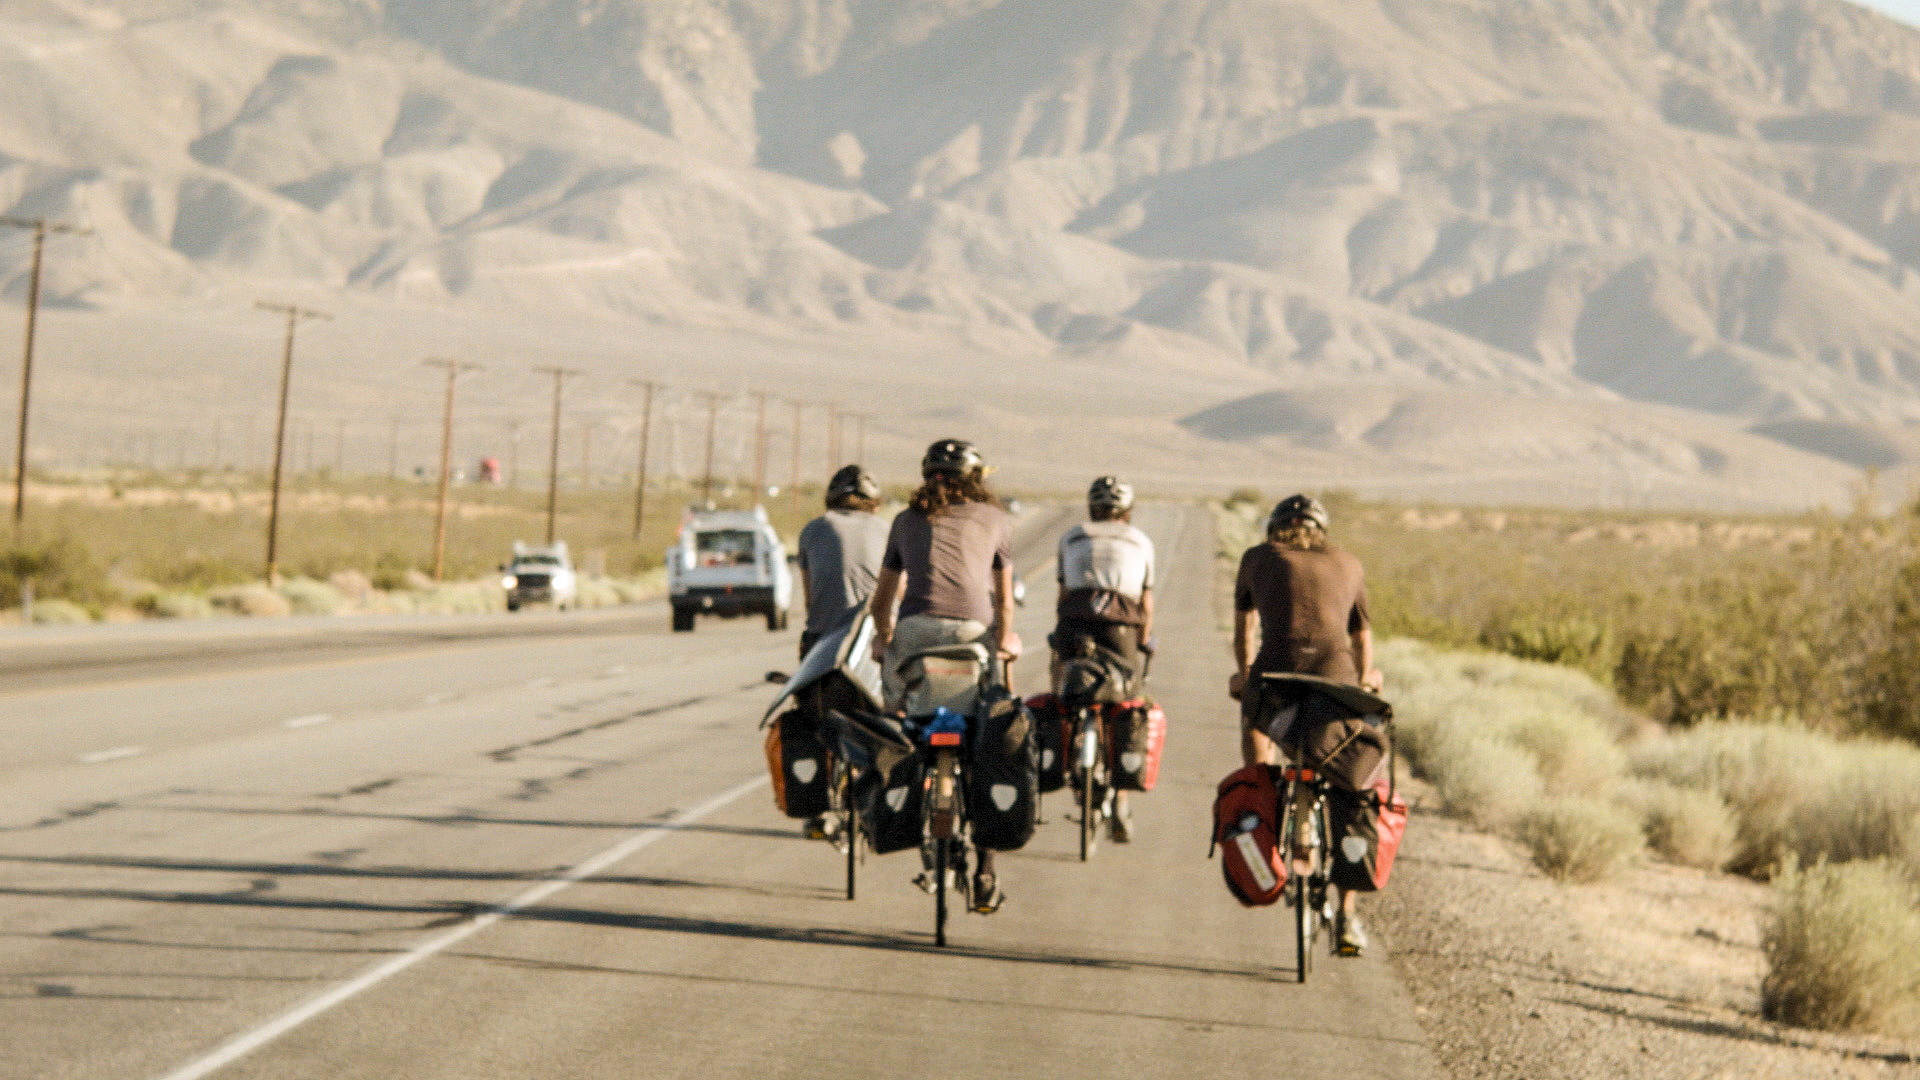 The Bikes of Wrath - Director: Cameron Ford & Charlie TurnbullCountry: AustraliaRun Time: 1 hour 40 minutesLanguage: English